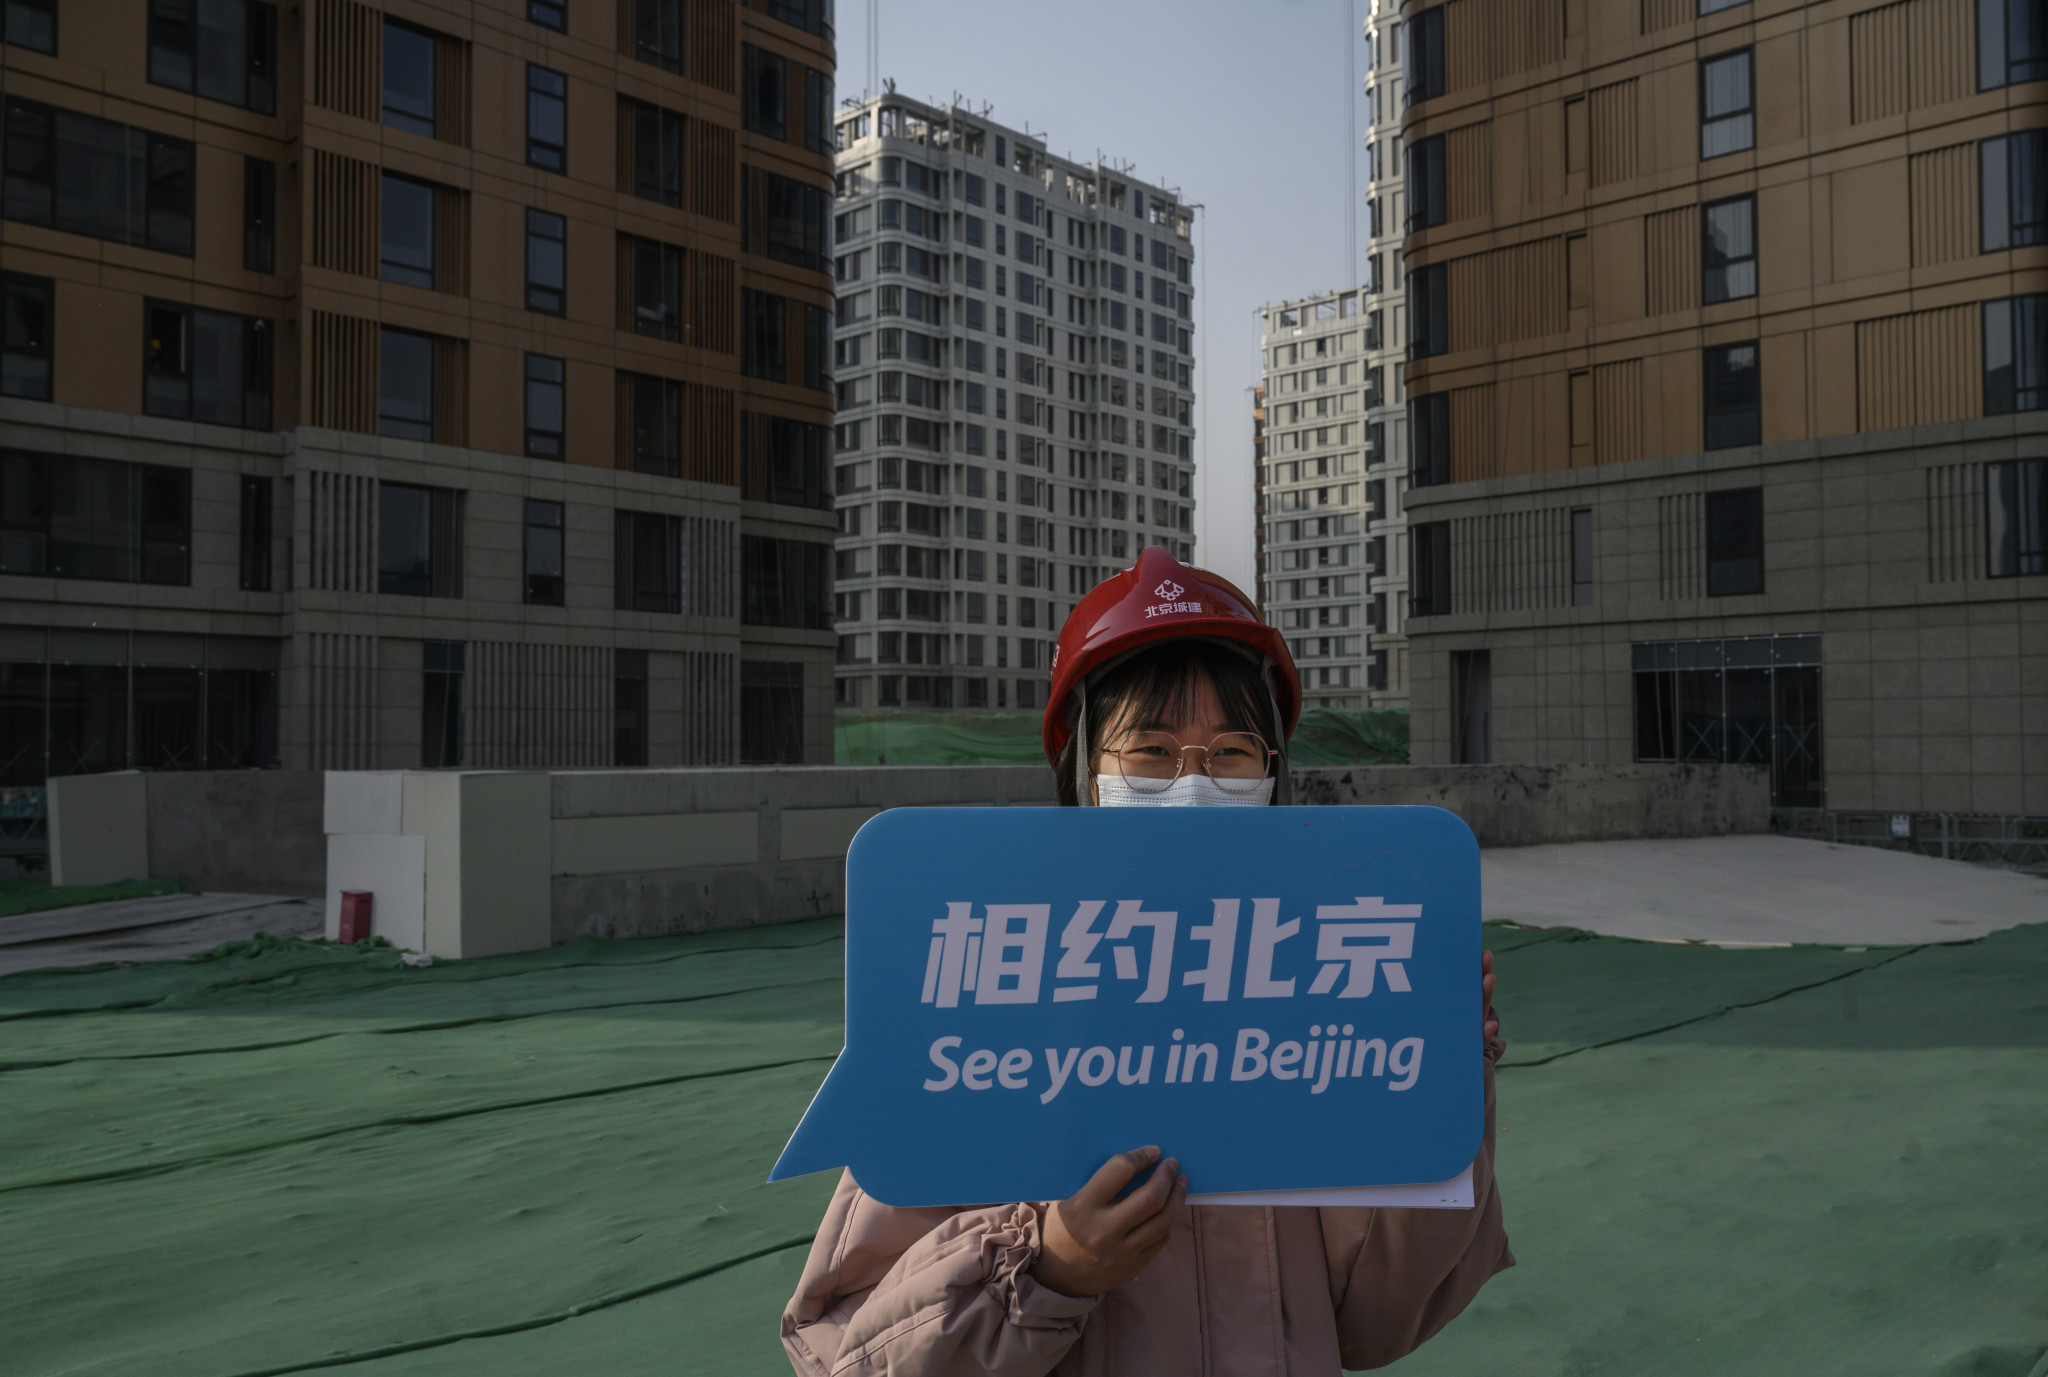 """Beijing 2022 campaigners target world leaders after IOC """"inaction"""""""